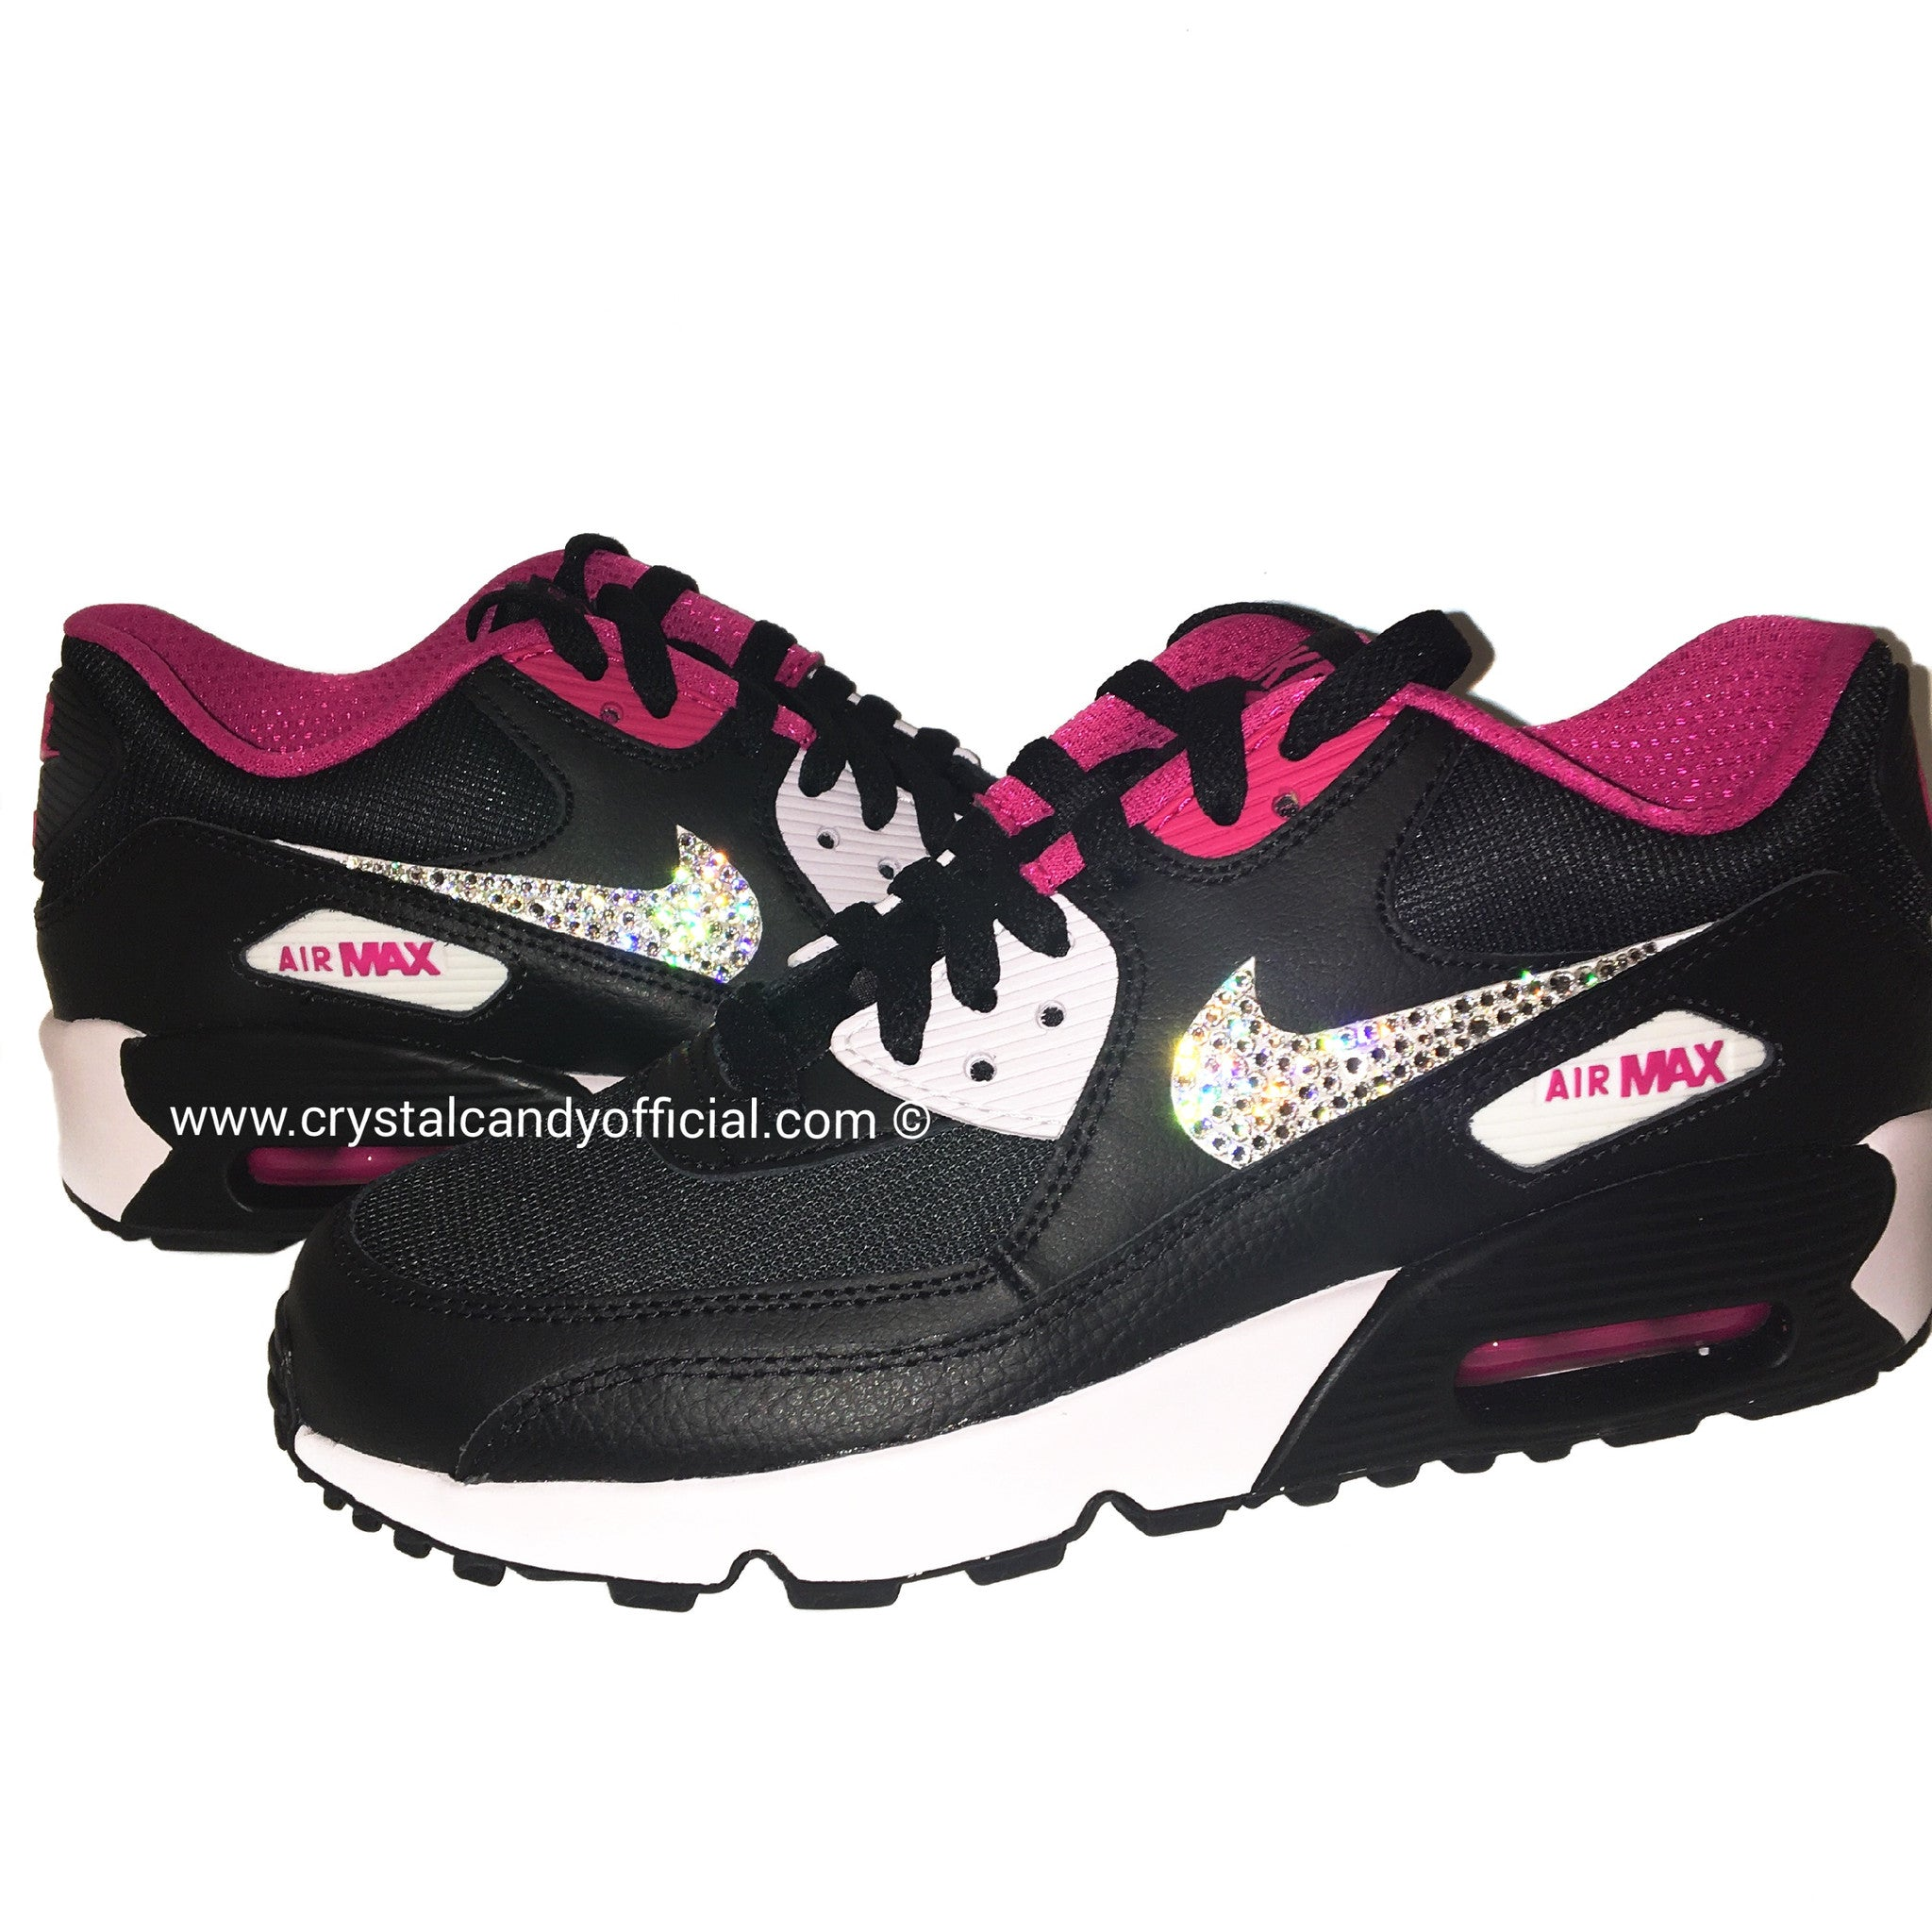 a61b263a0fe Crystal Nike Air Max 90's in Black & Pink